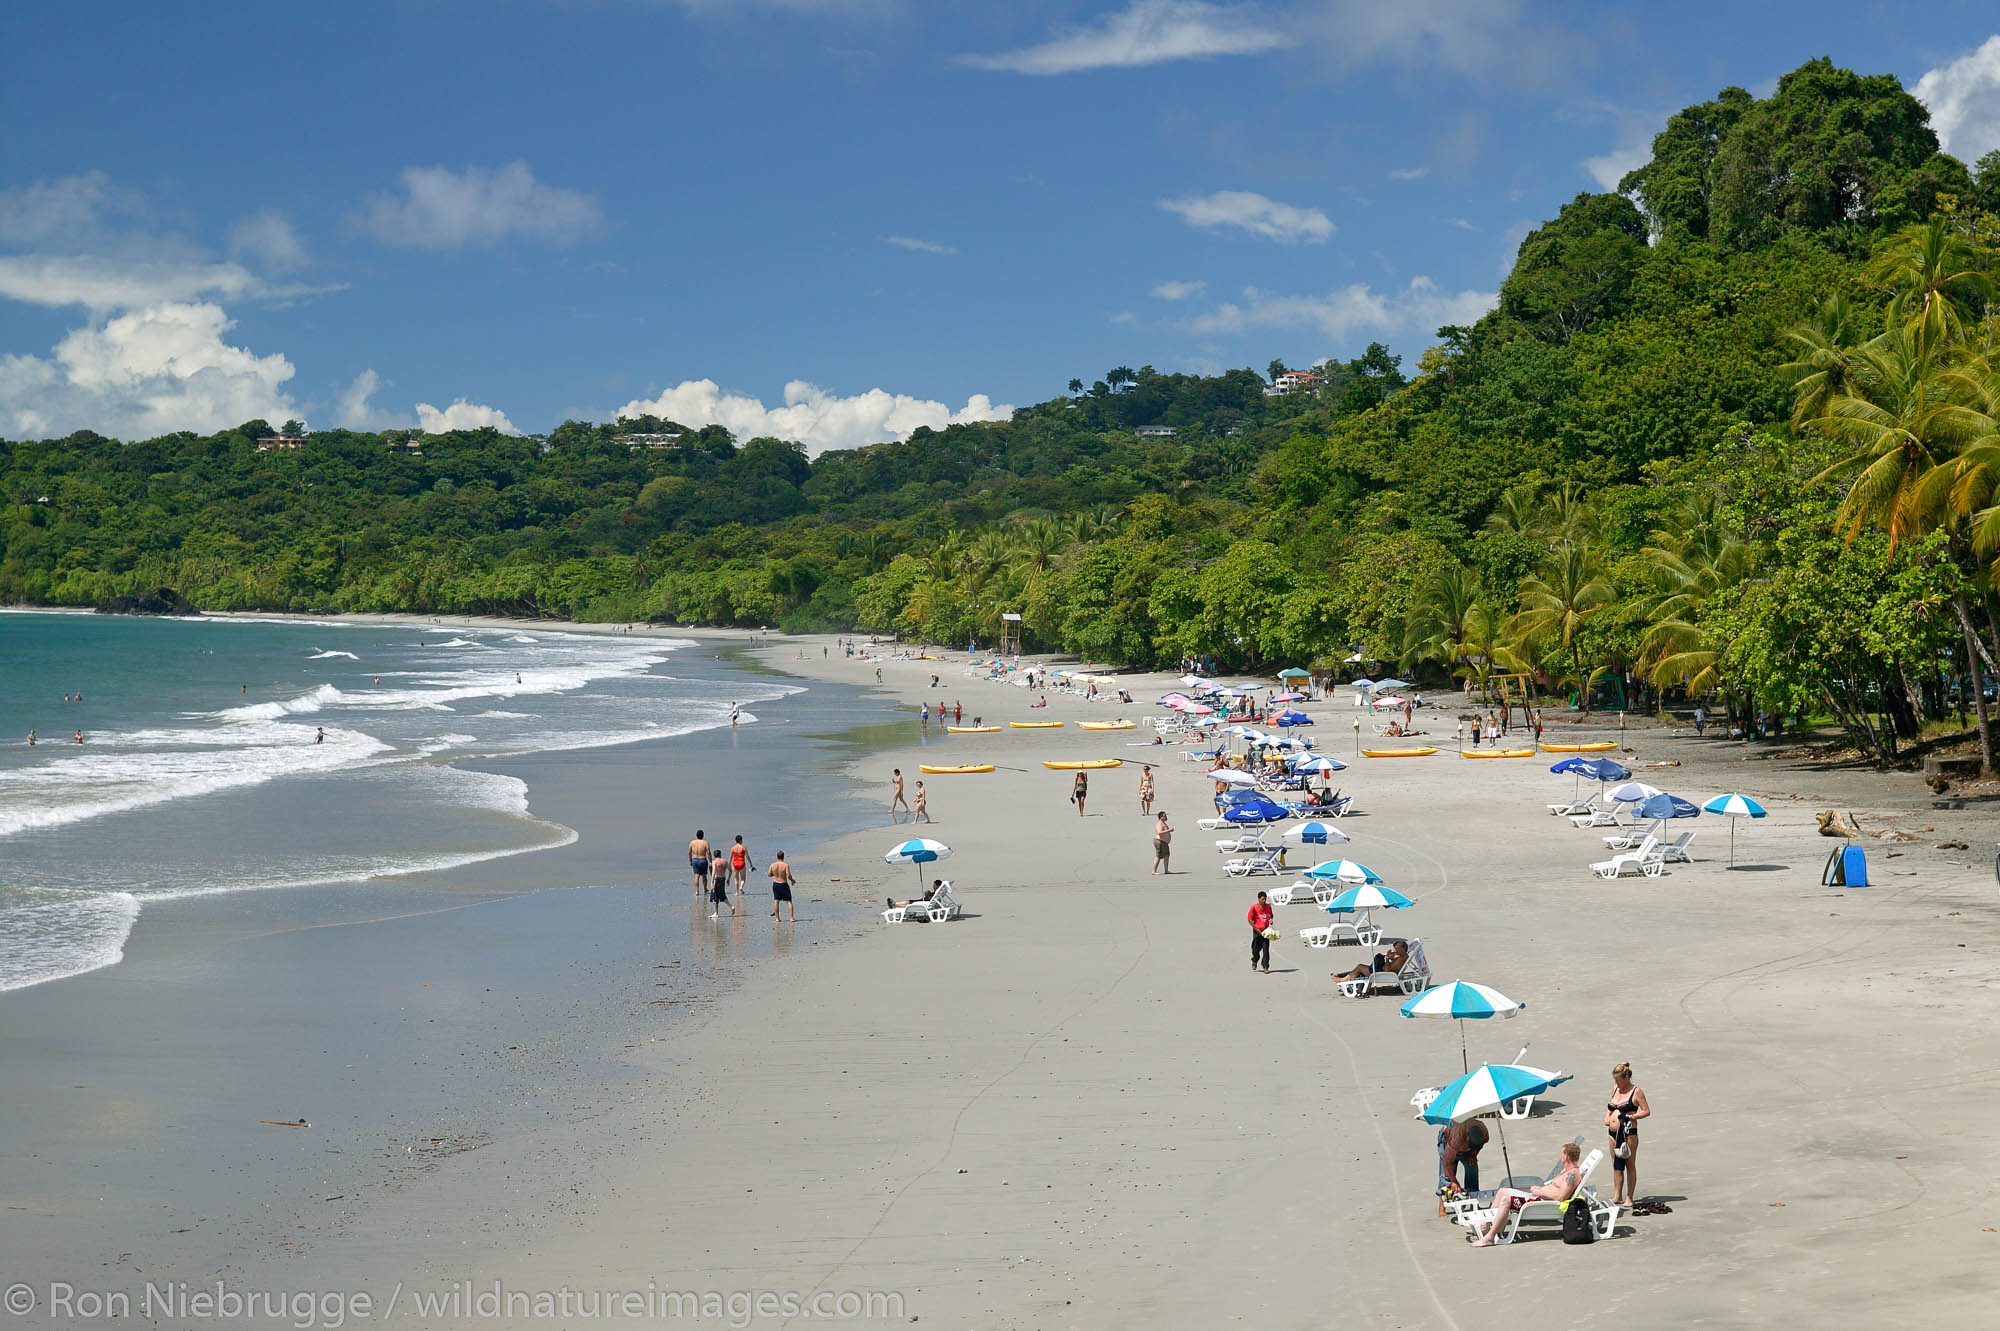 The First Beach and the Pacific Ocean at Manuel Antonio, Costa Rica.